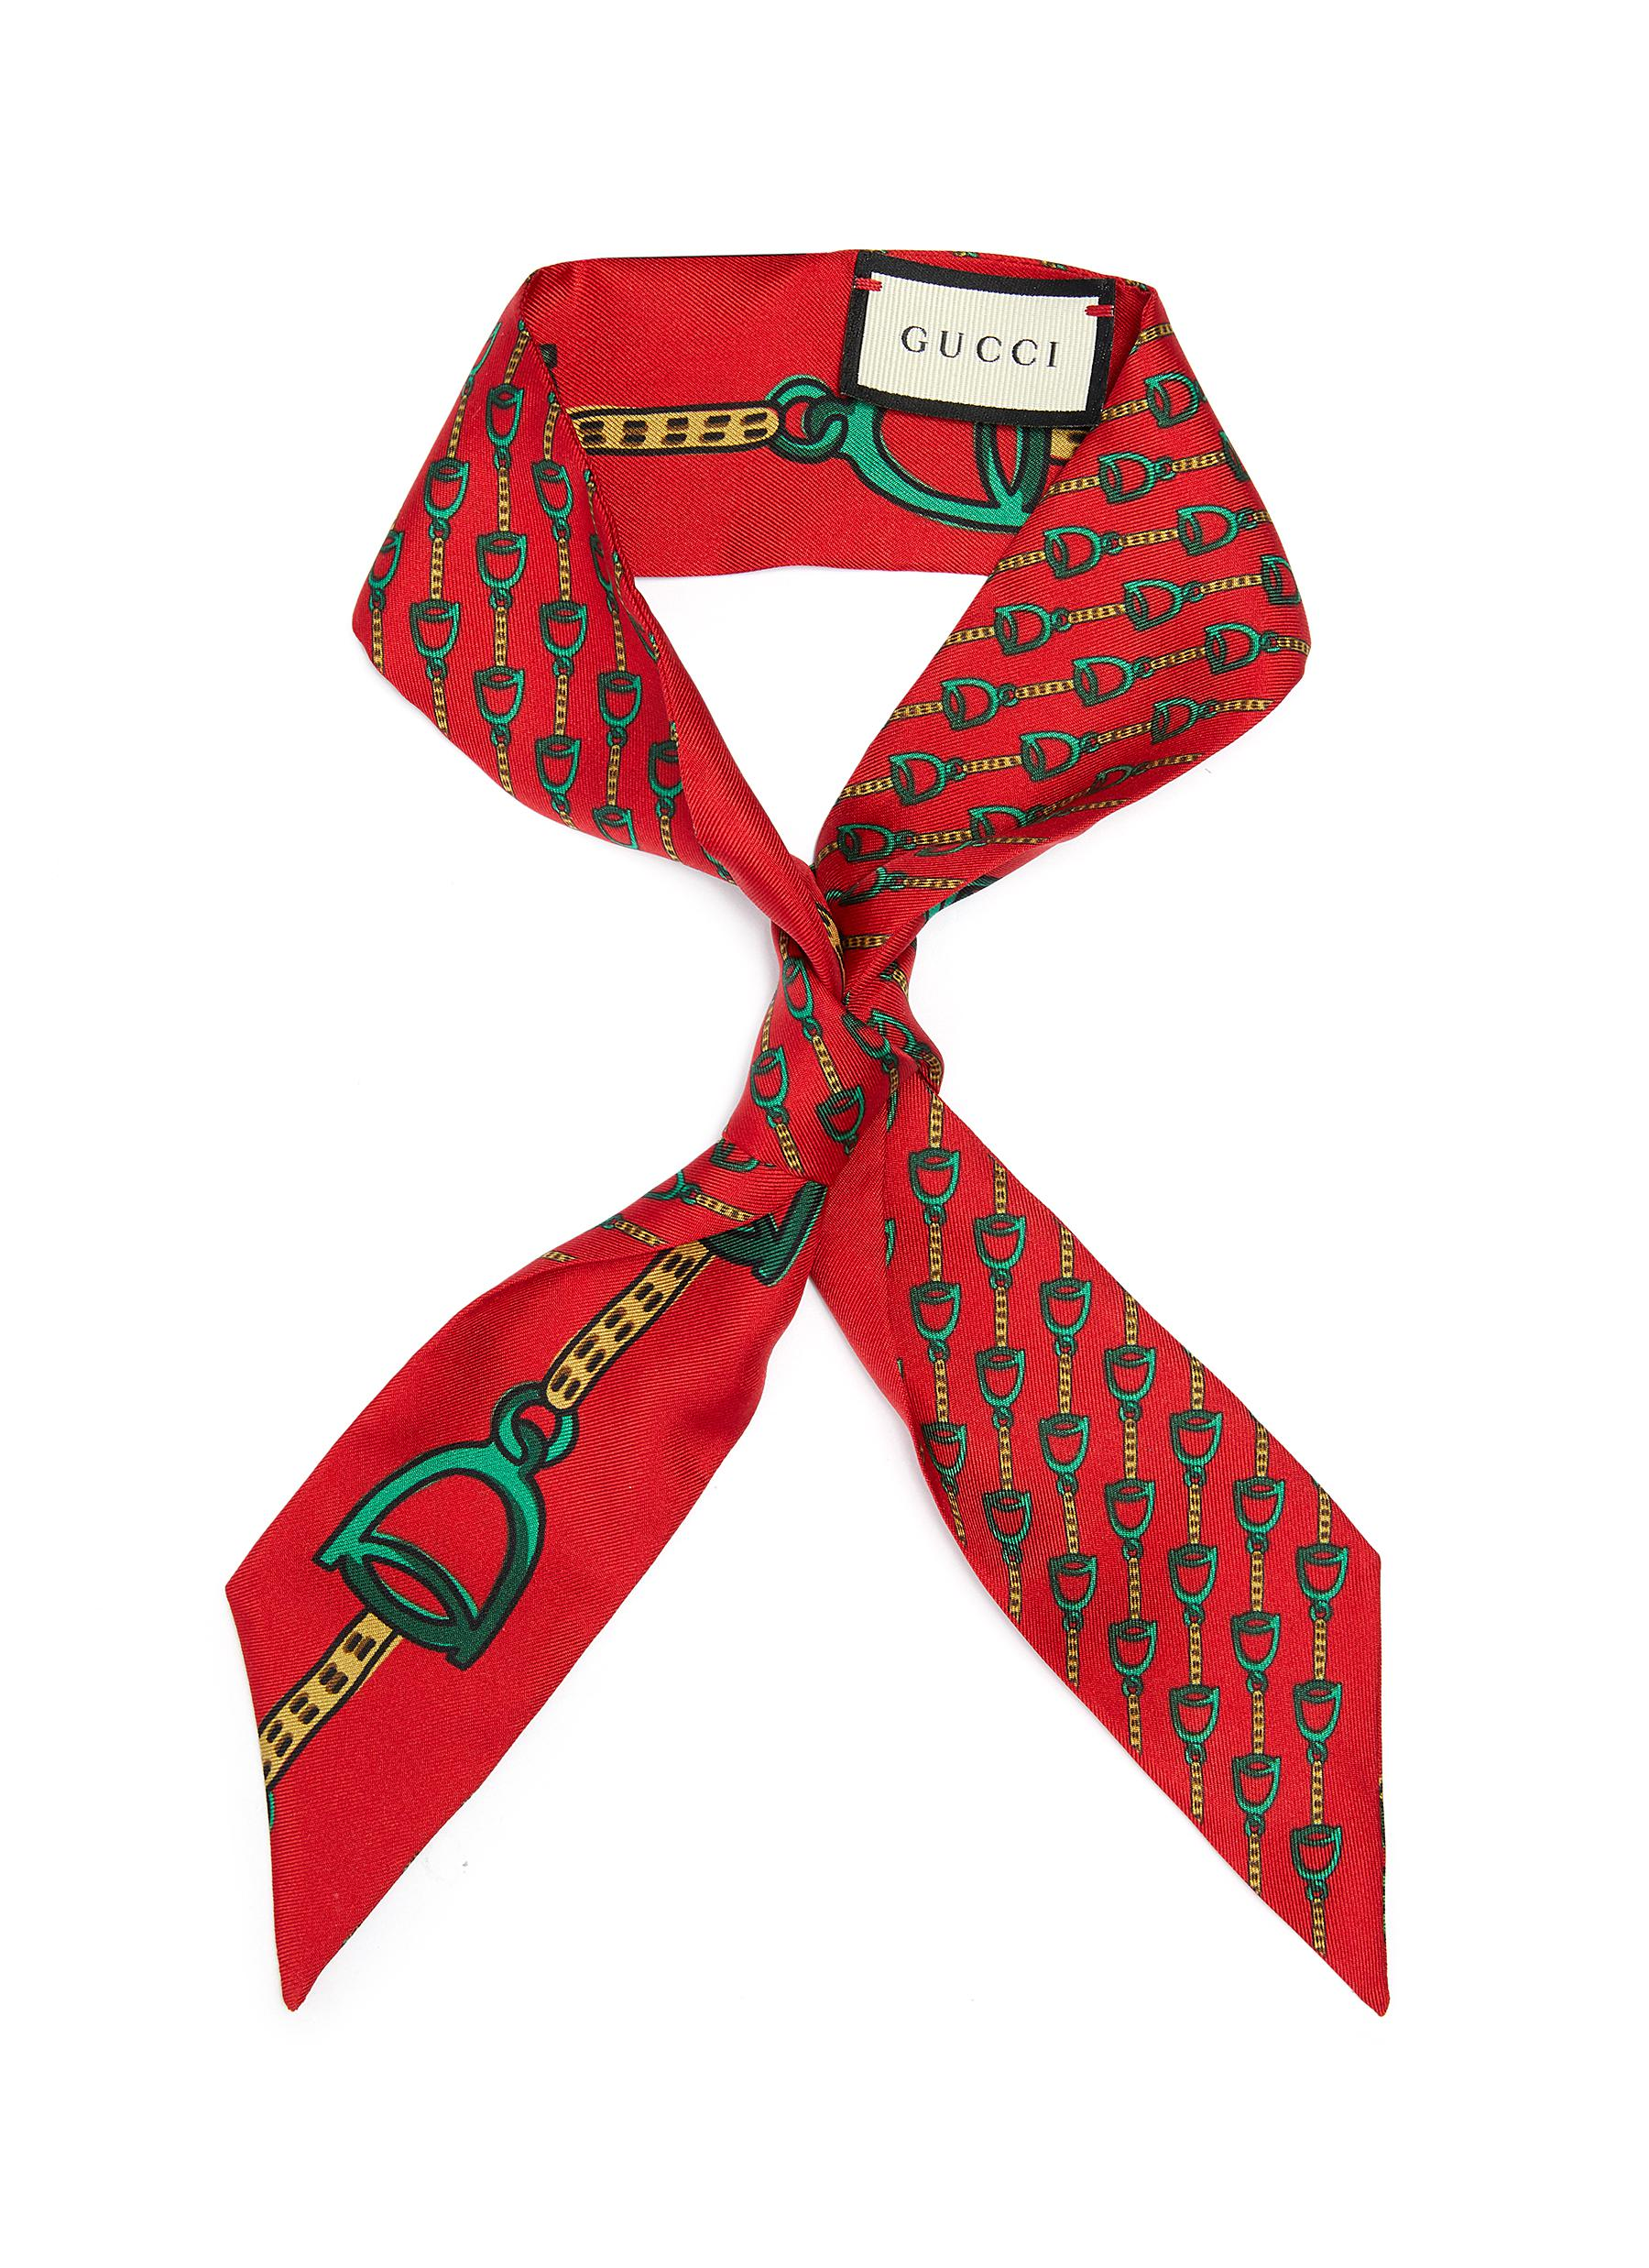 90cfb54f30f Main View - Click To Enlarge - Gucci -  Stirrups  print silk twilly scarf